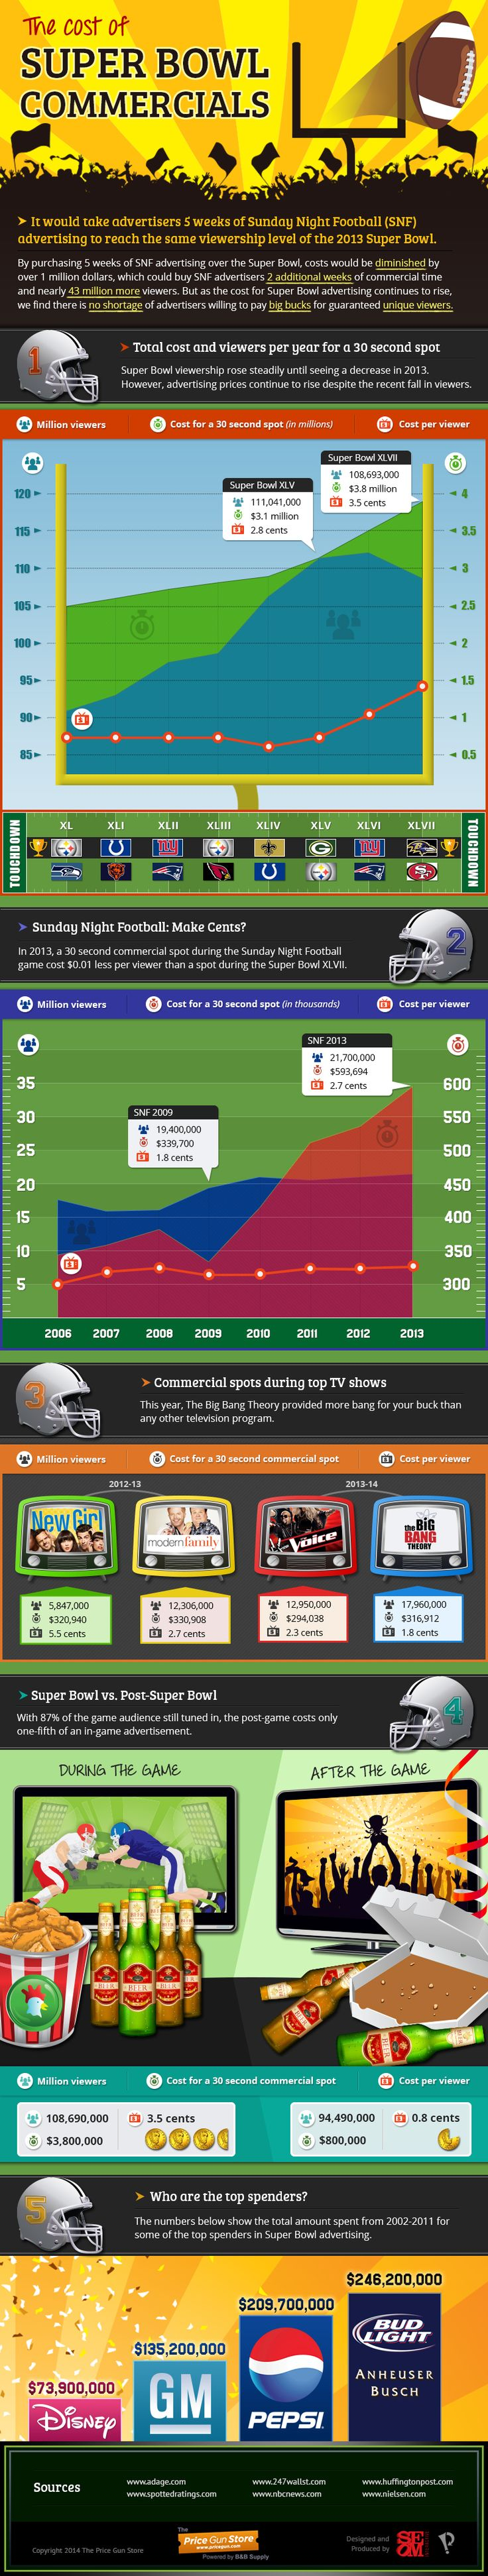 The Cost of Super Bowl Commercials